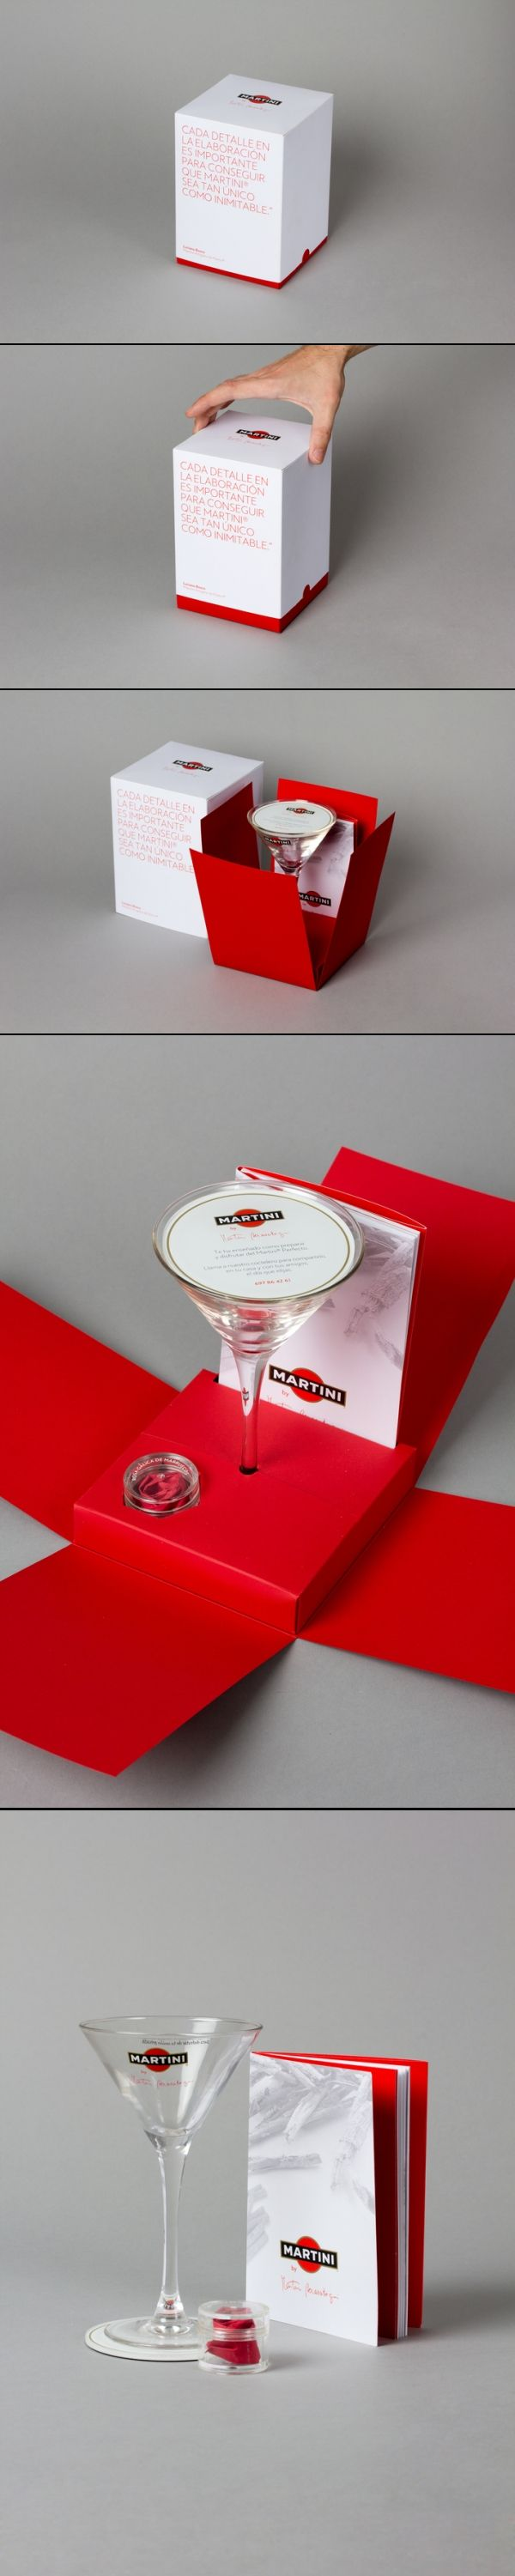 Martini by Martín Berasategui Advertising company: 6 Grados Design of the welcome pack for the ceremony / dinner / event that Martini organized in Italy, led by Martín Berasategui, where the secret formula of this famous vermouth was revealed. PD